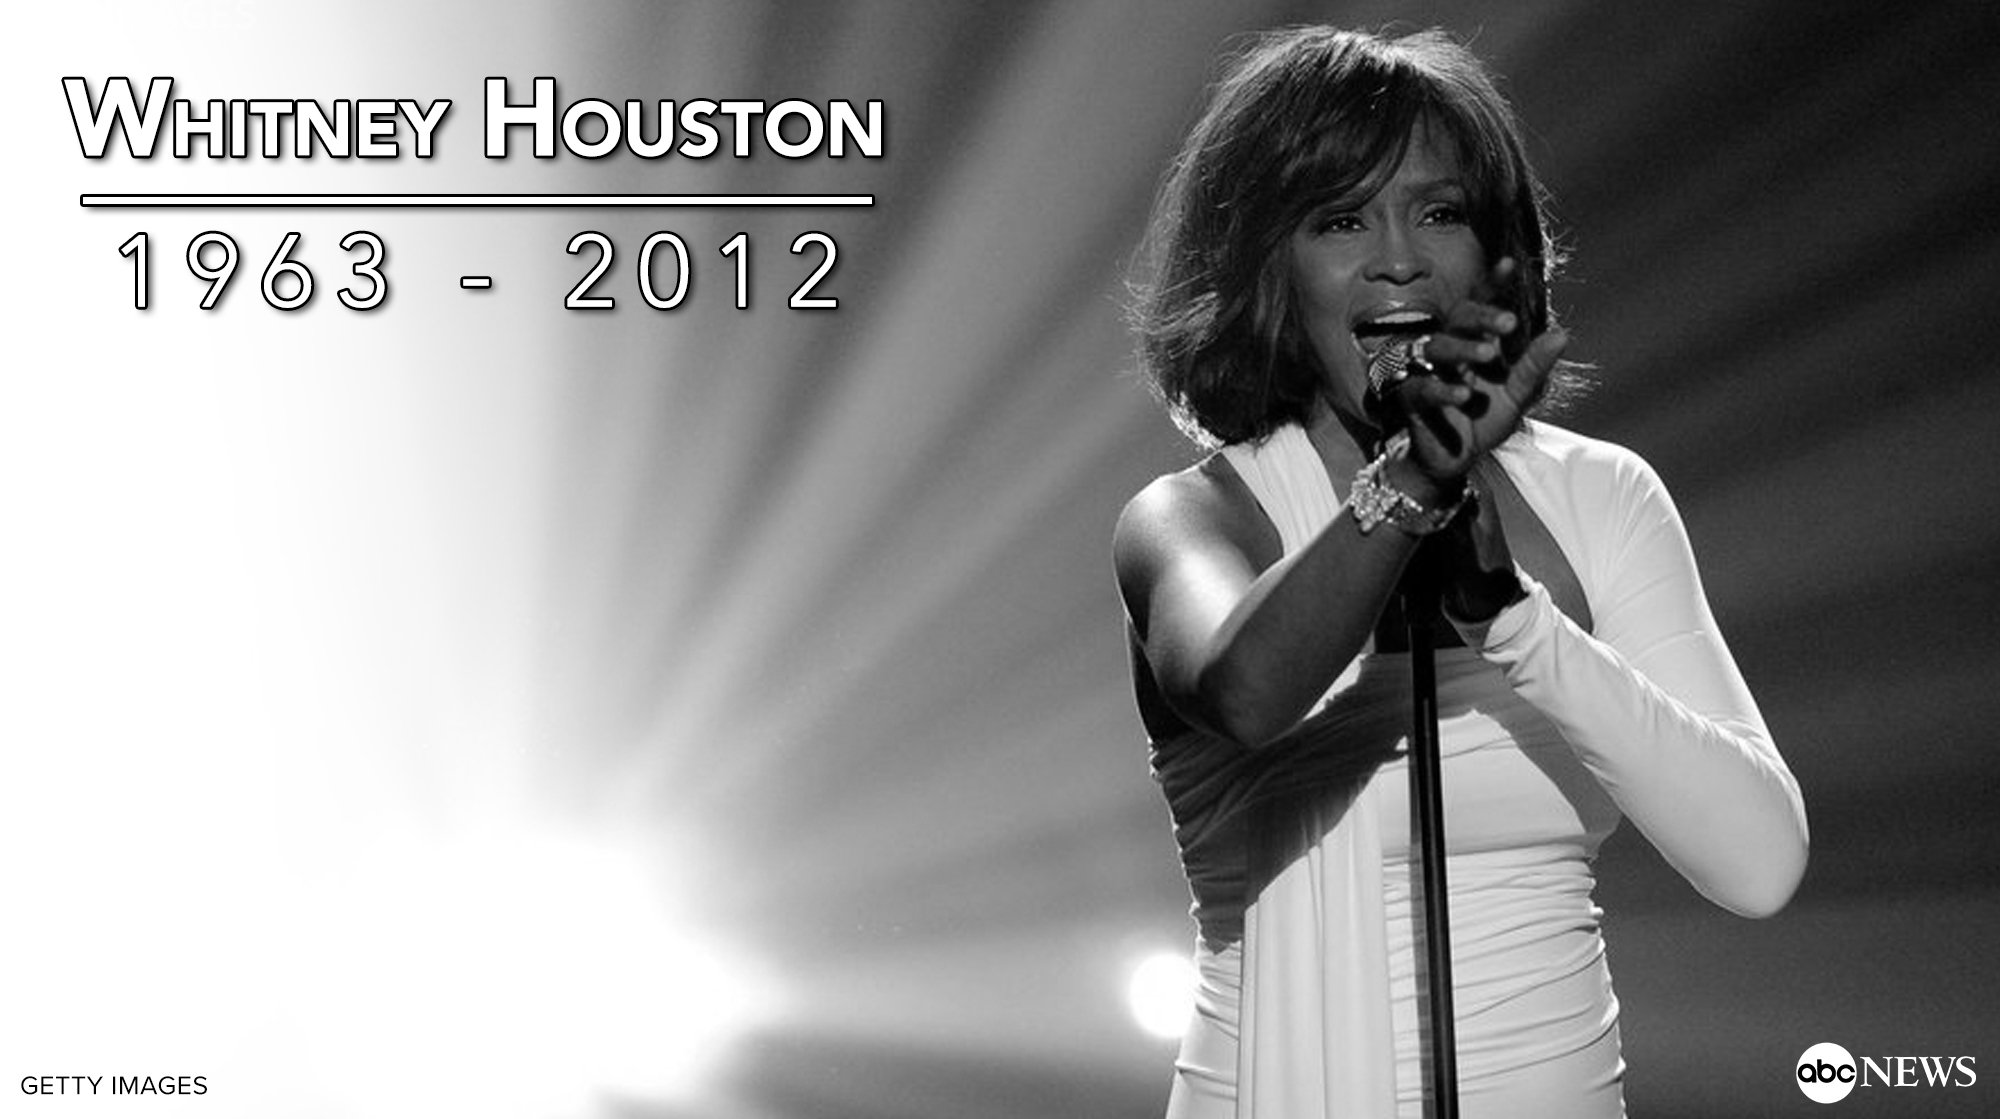 Whitney Houston was born on this day in 1963. She would have turned 53 years old today. https://t.co/b98Fp2axCA